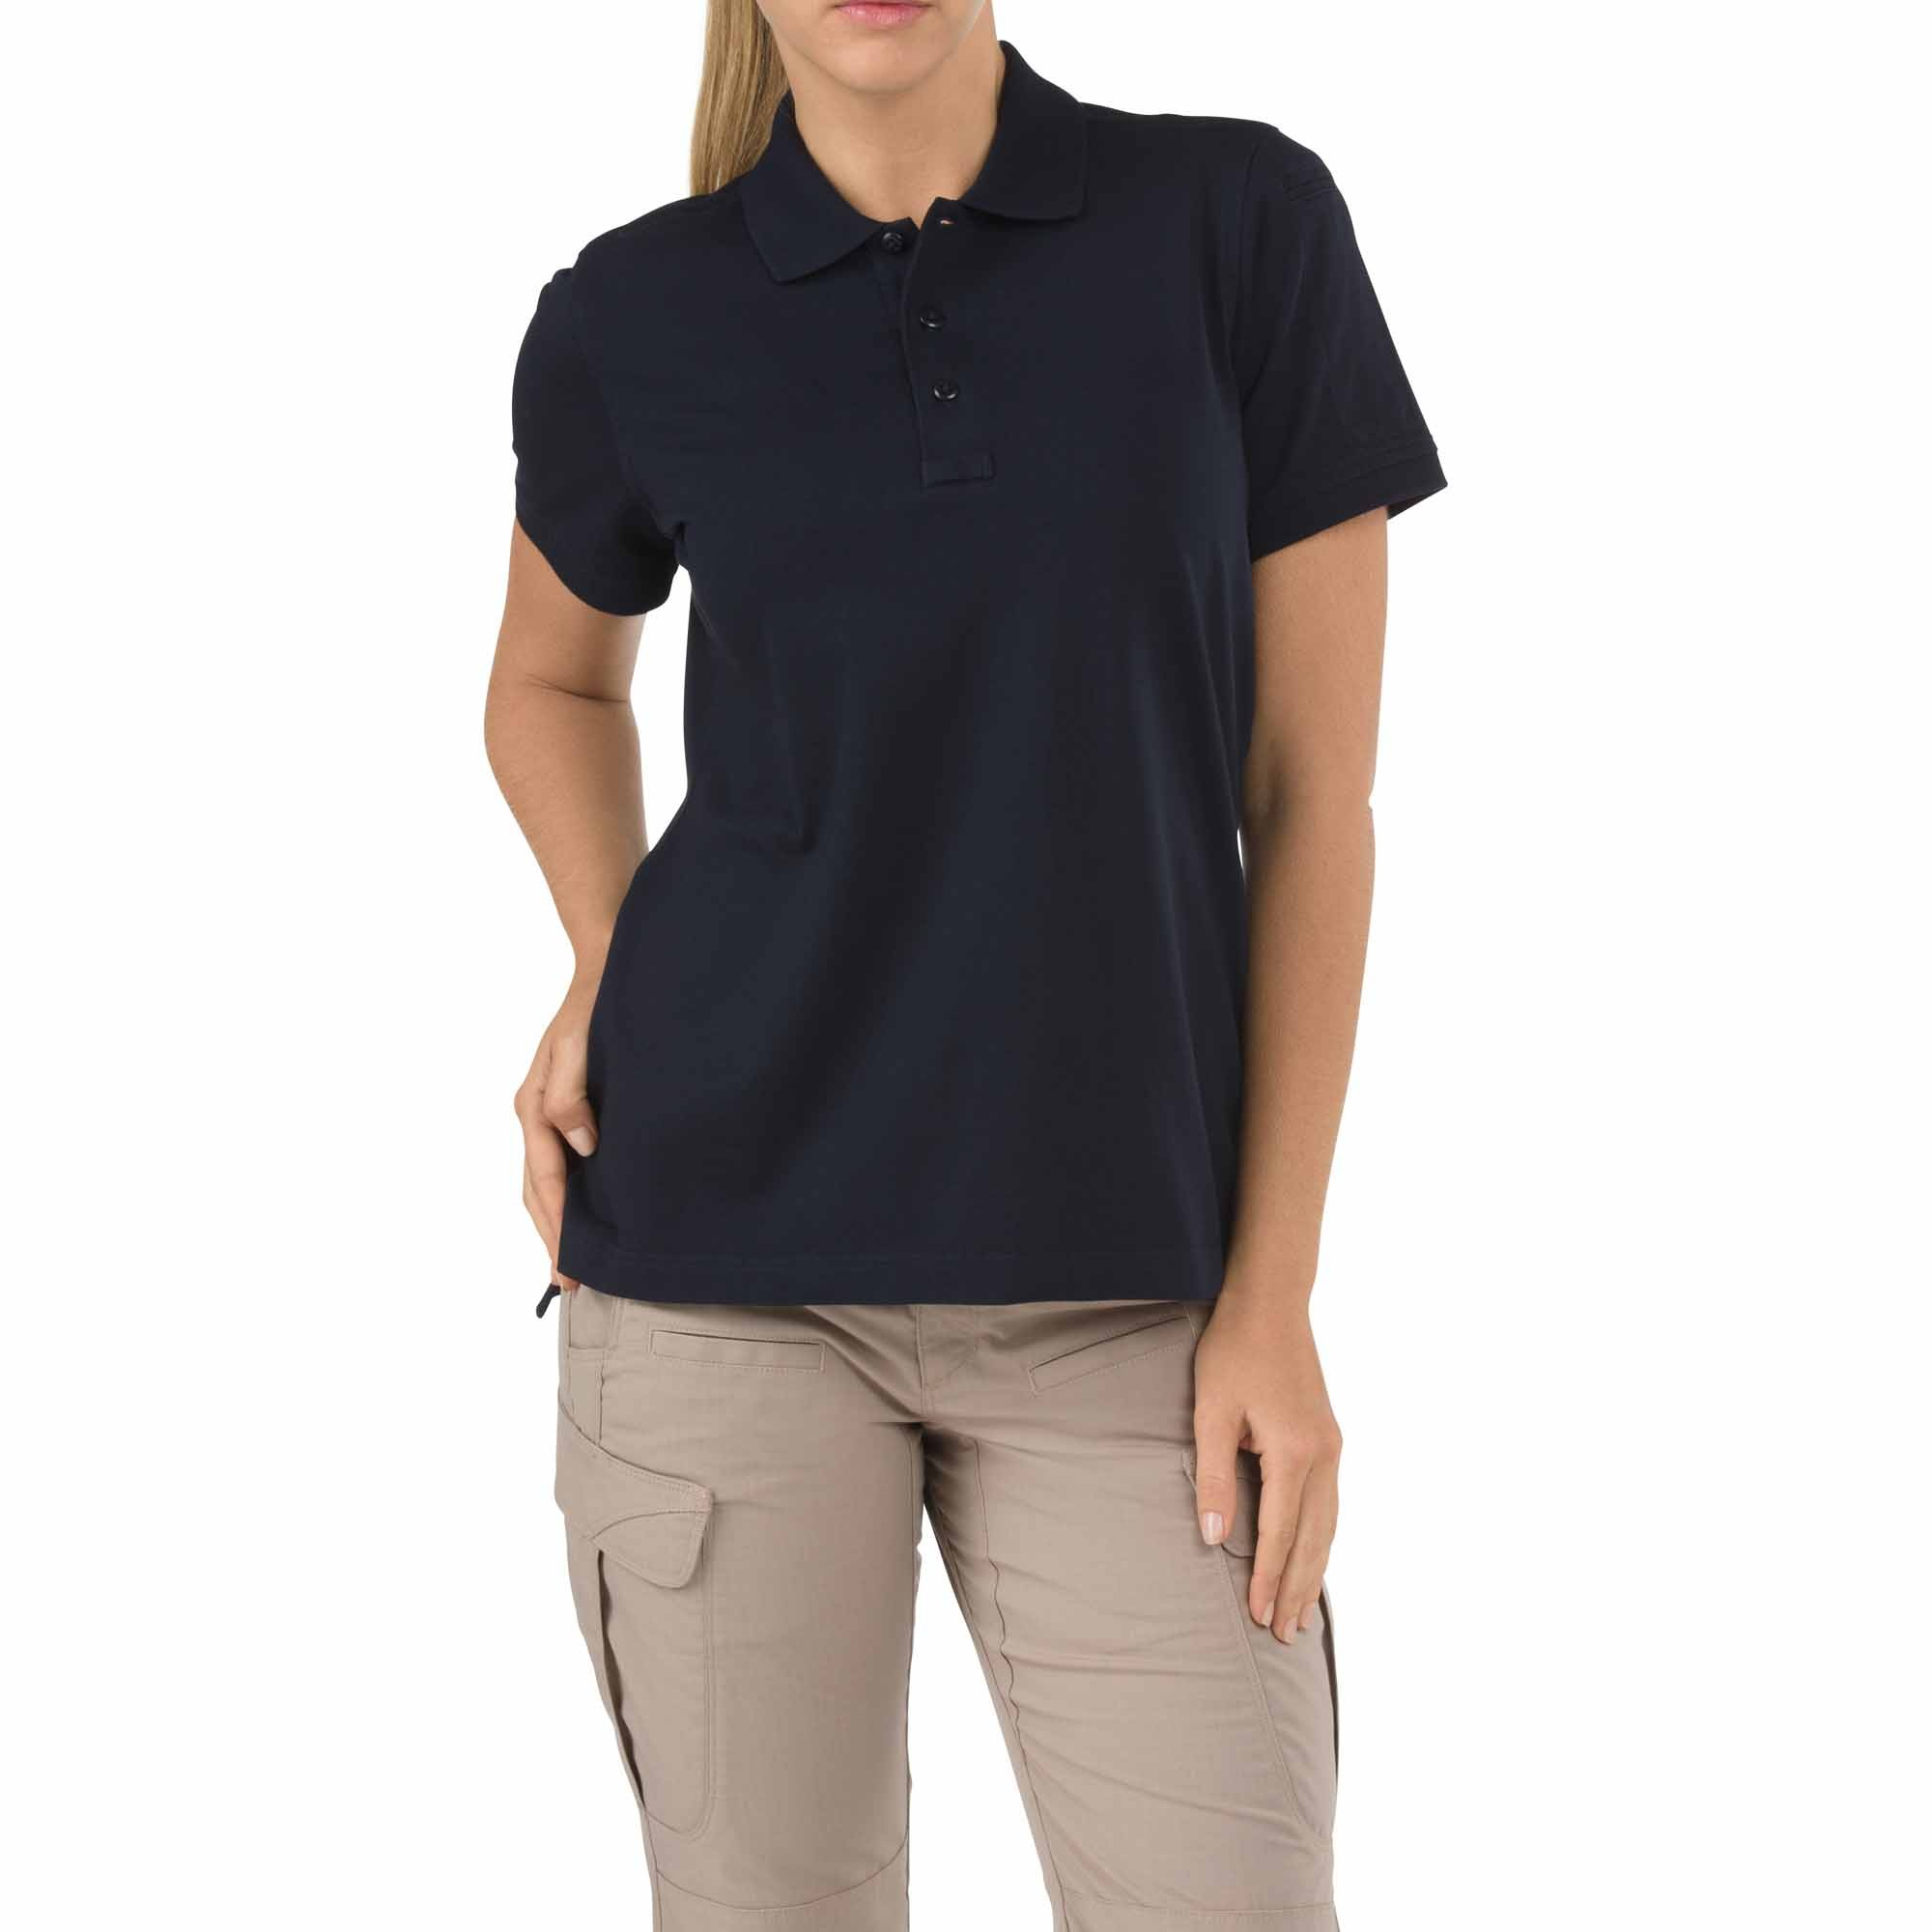 5.11 Womens Tactical Short Sleeve Polo 61164